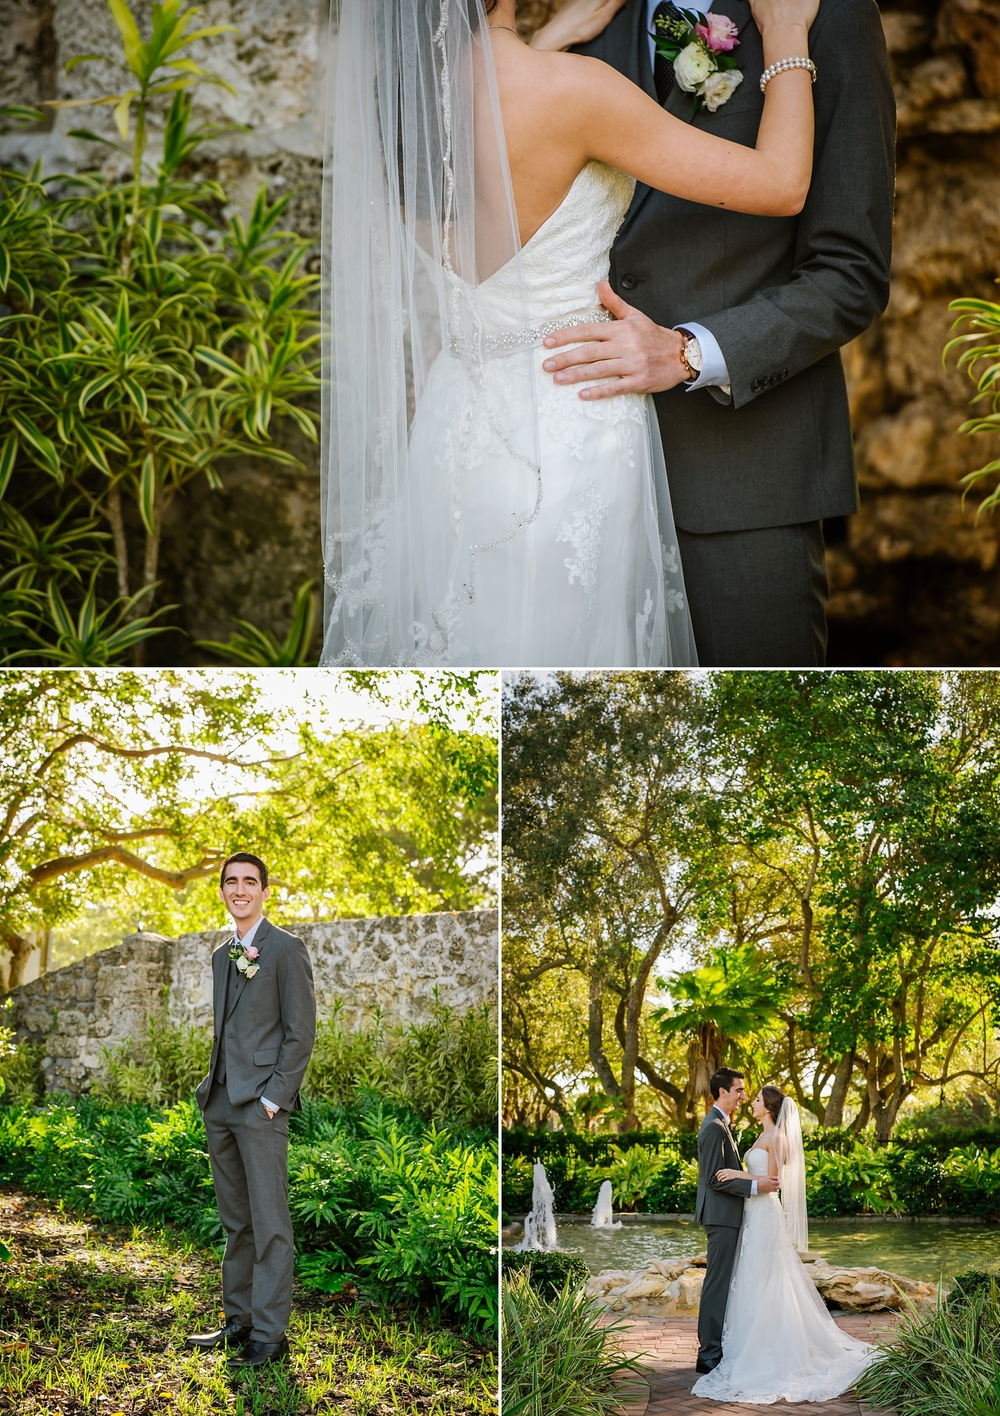 miami-wedding-photography-ashlee-hamon-elegant-vintage-antique-wedding_0011.jpg